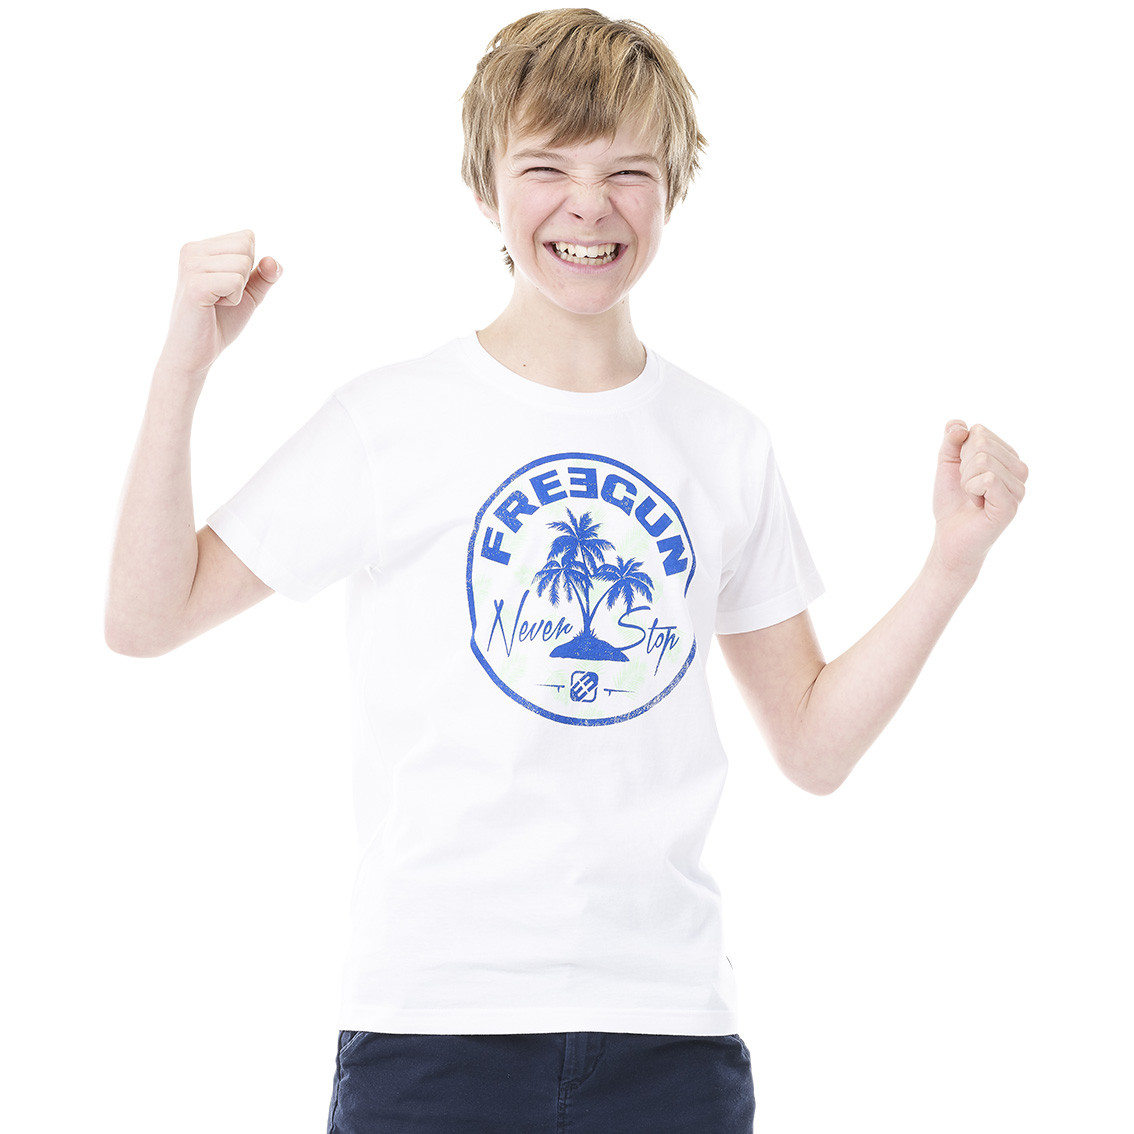 T-shirt freegun palmier blanc et bleu (photo)